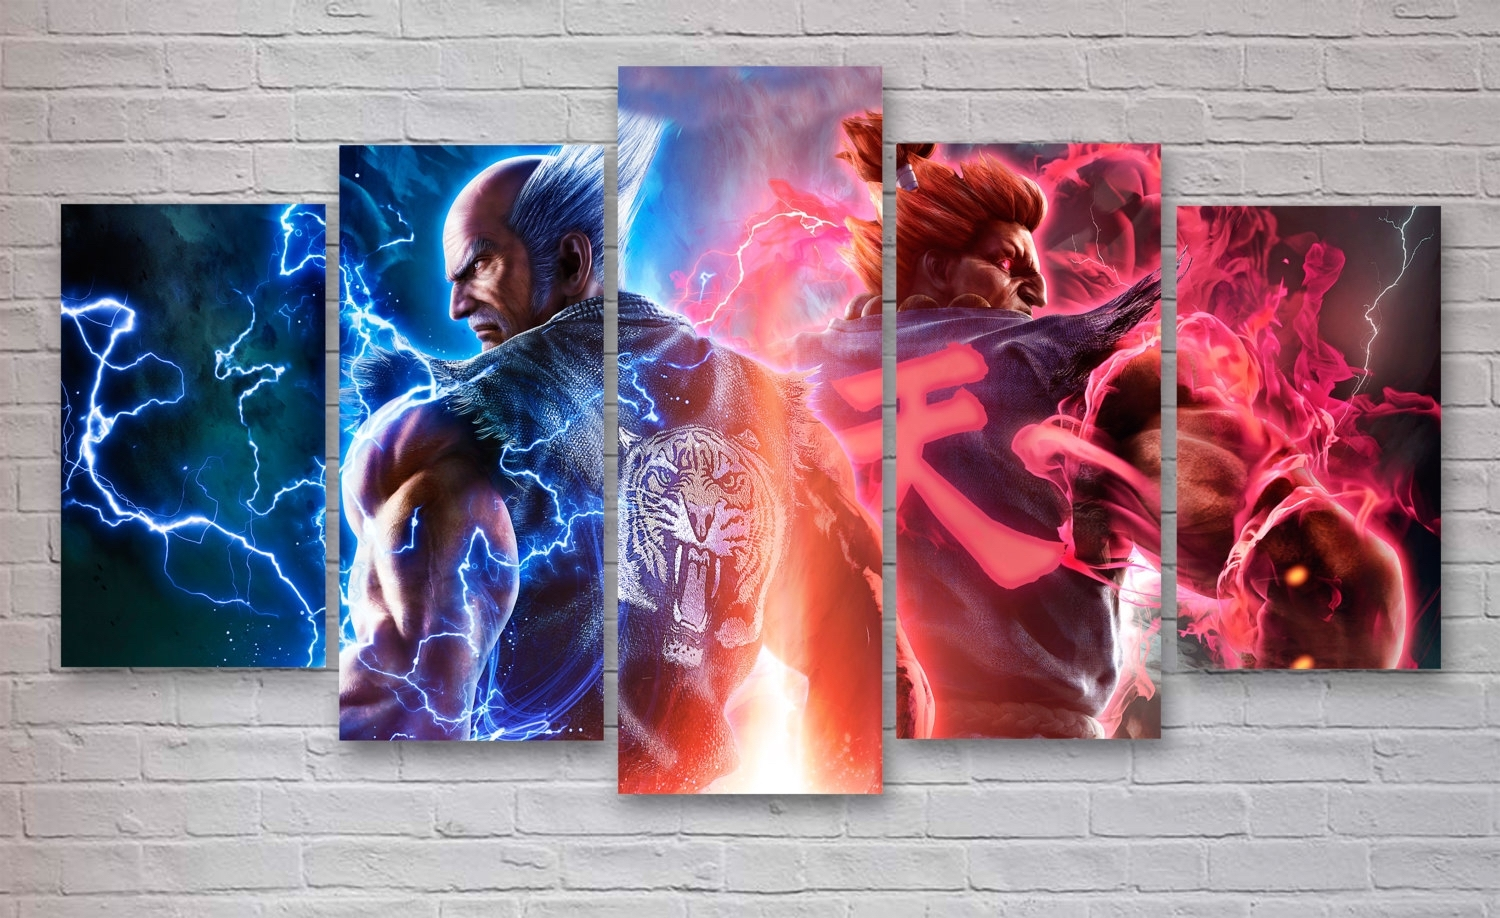 Tekken 7 Gaming 5 Panel / Piece Canvas – Wall Art – Office In 2017 Gaming Canvas Wall Art (View 13 of 15)